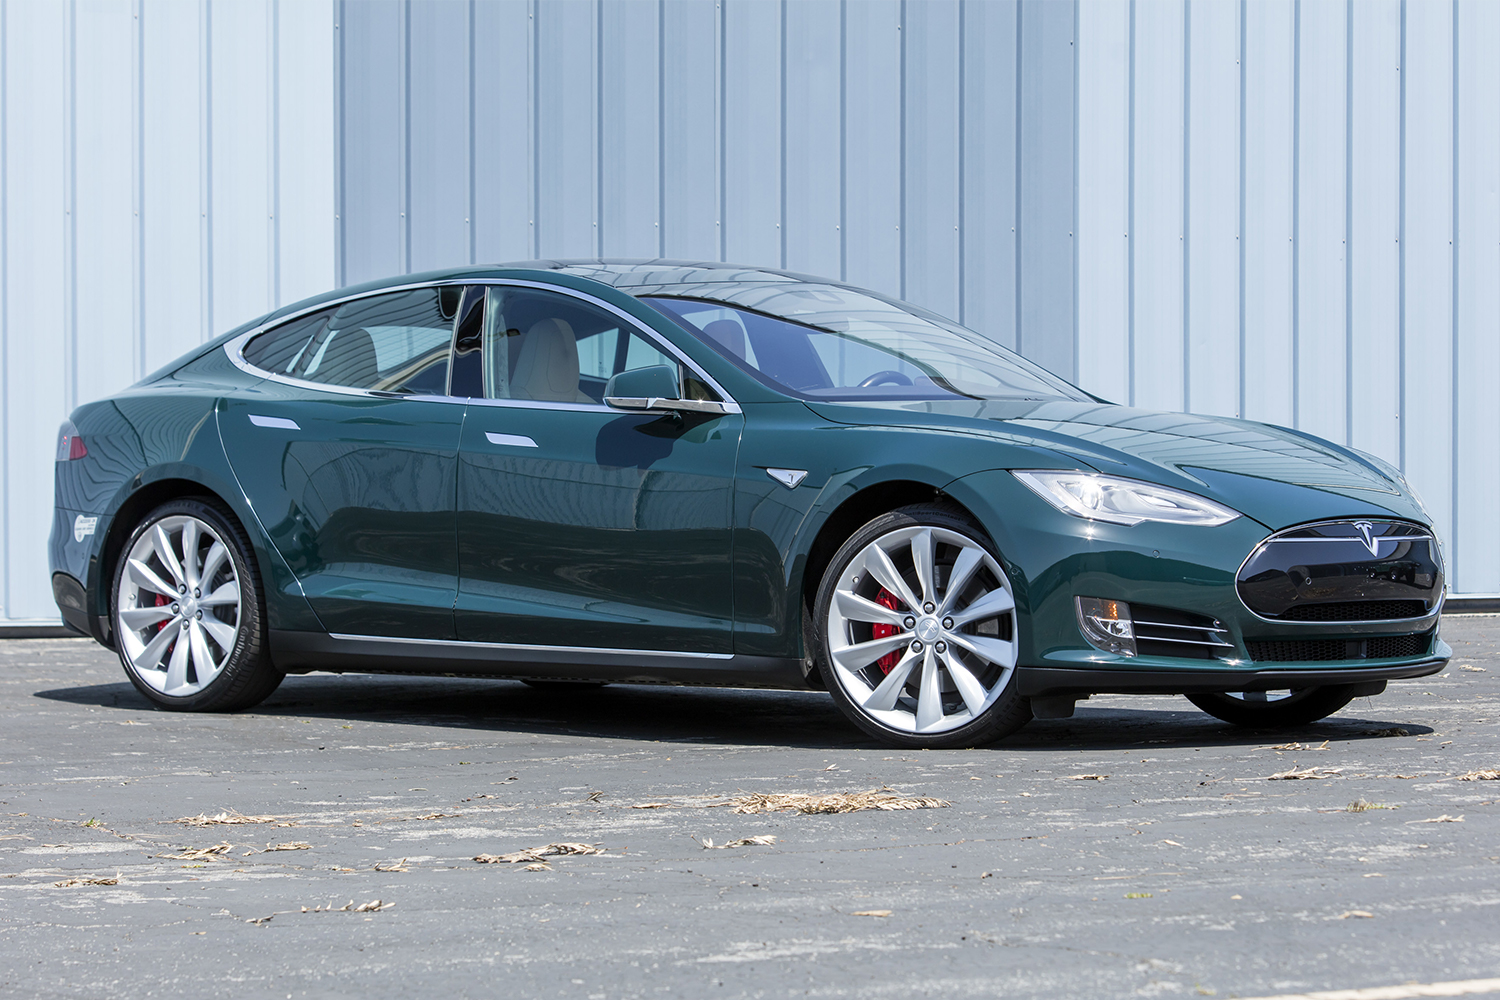 A 2015 Tesla Model S P85D owned by Tom Hanks. The electric vehicle will sell at the Bonhams Quail Lodge Auction as part of Monterey Car Week.